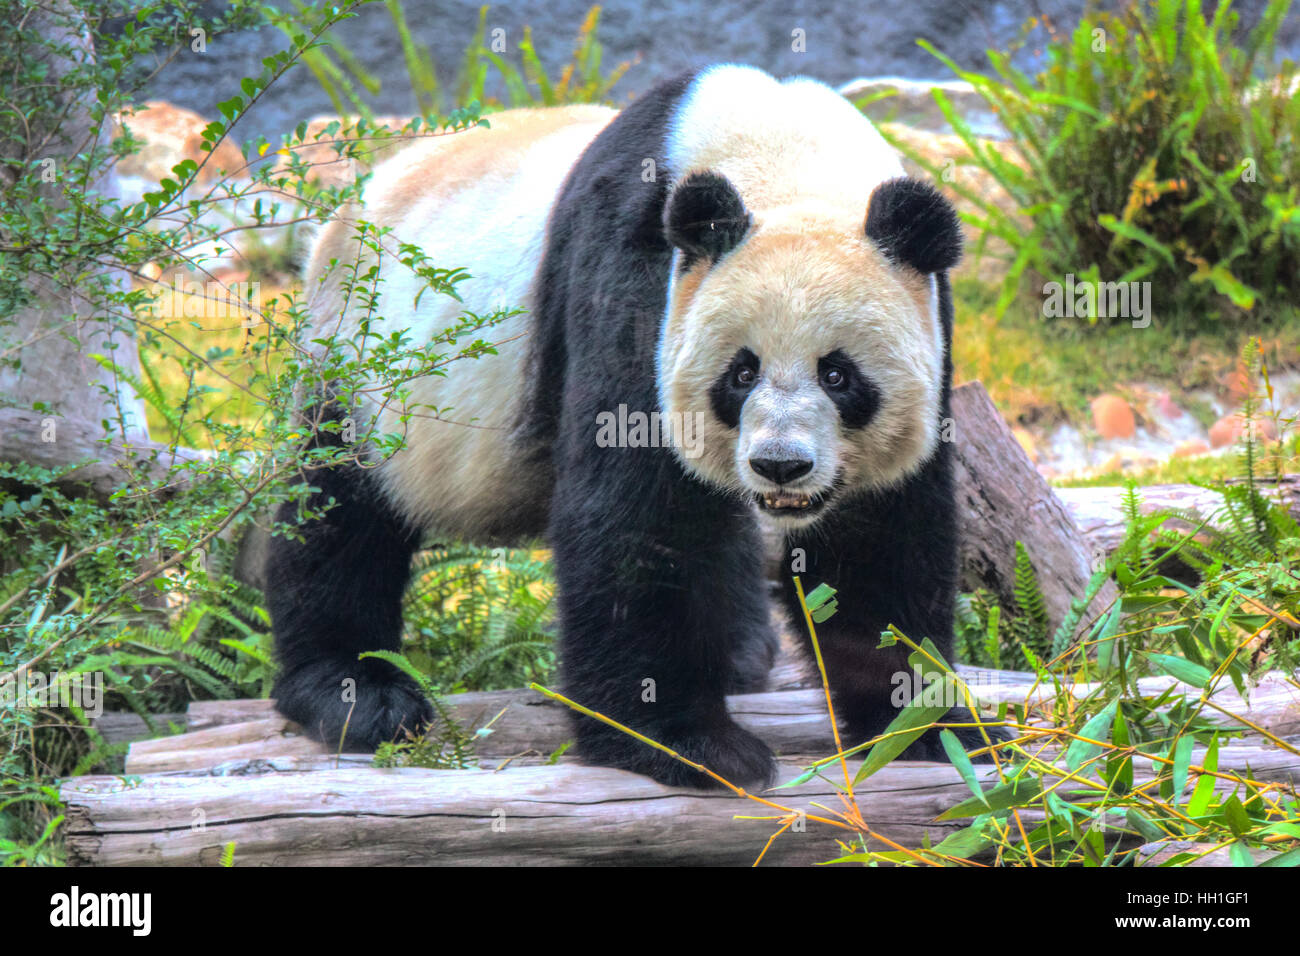 Xin Xin the giant Panda making eye contact with me through the thick glass enclosure in  Seac Pai Van Park, Seac - Stock Image